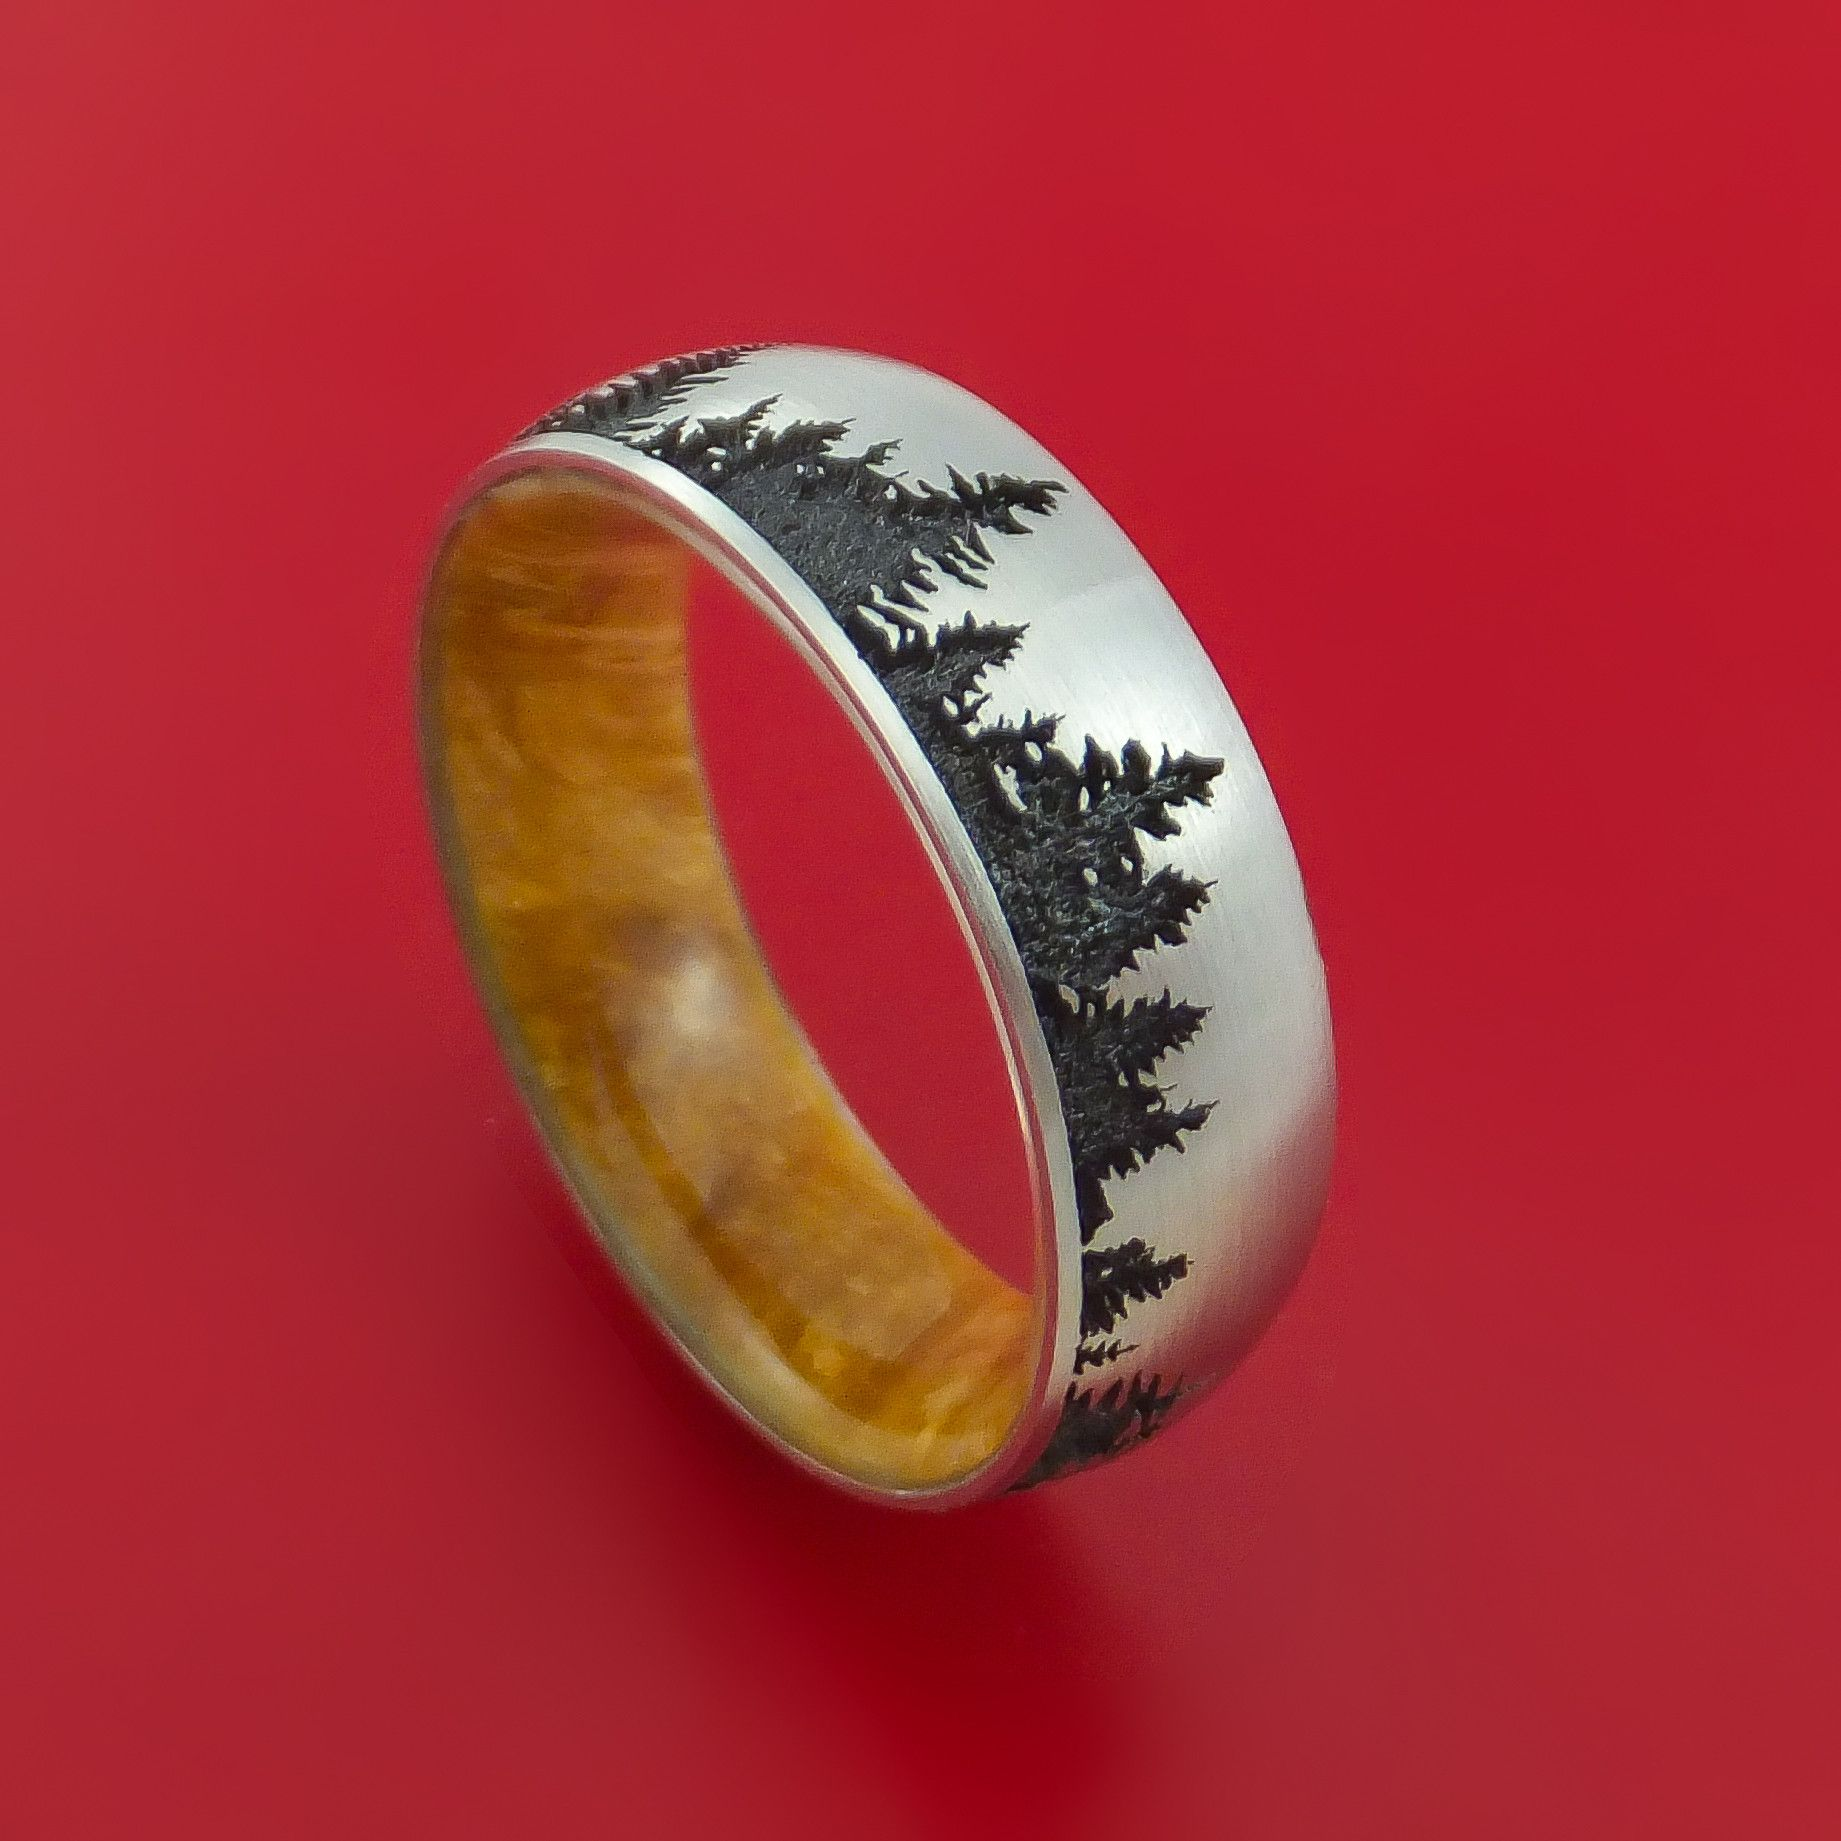 Titanium Ring with LaserEtched Pine Tree Design Inlay and